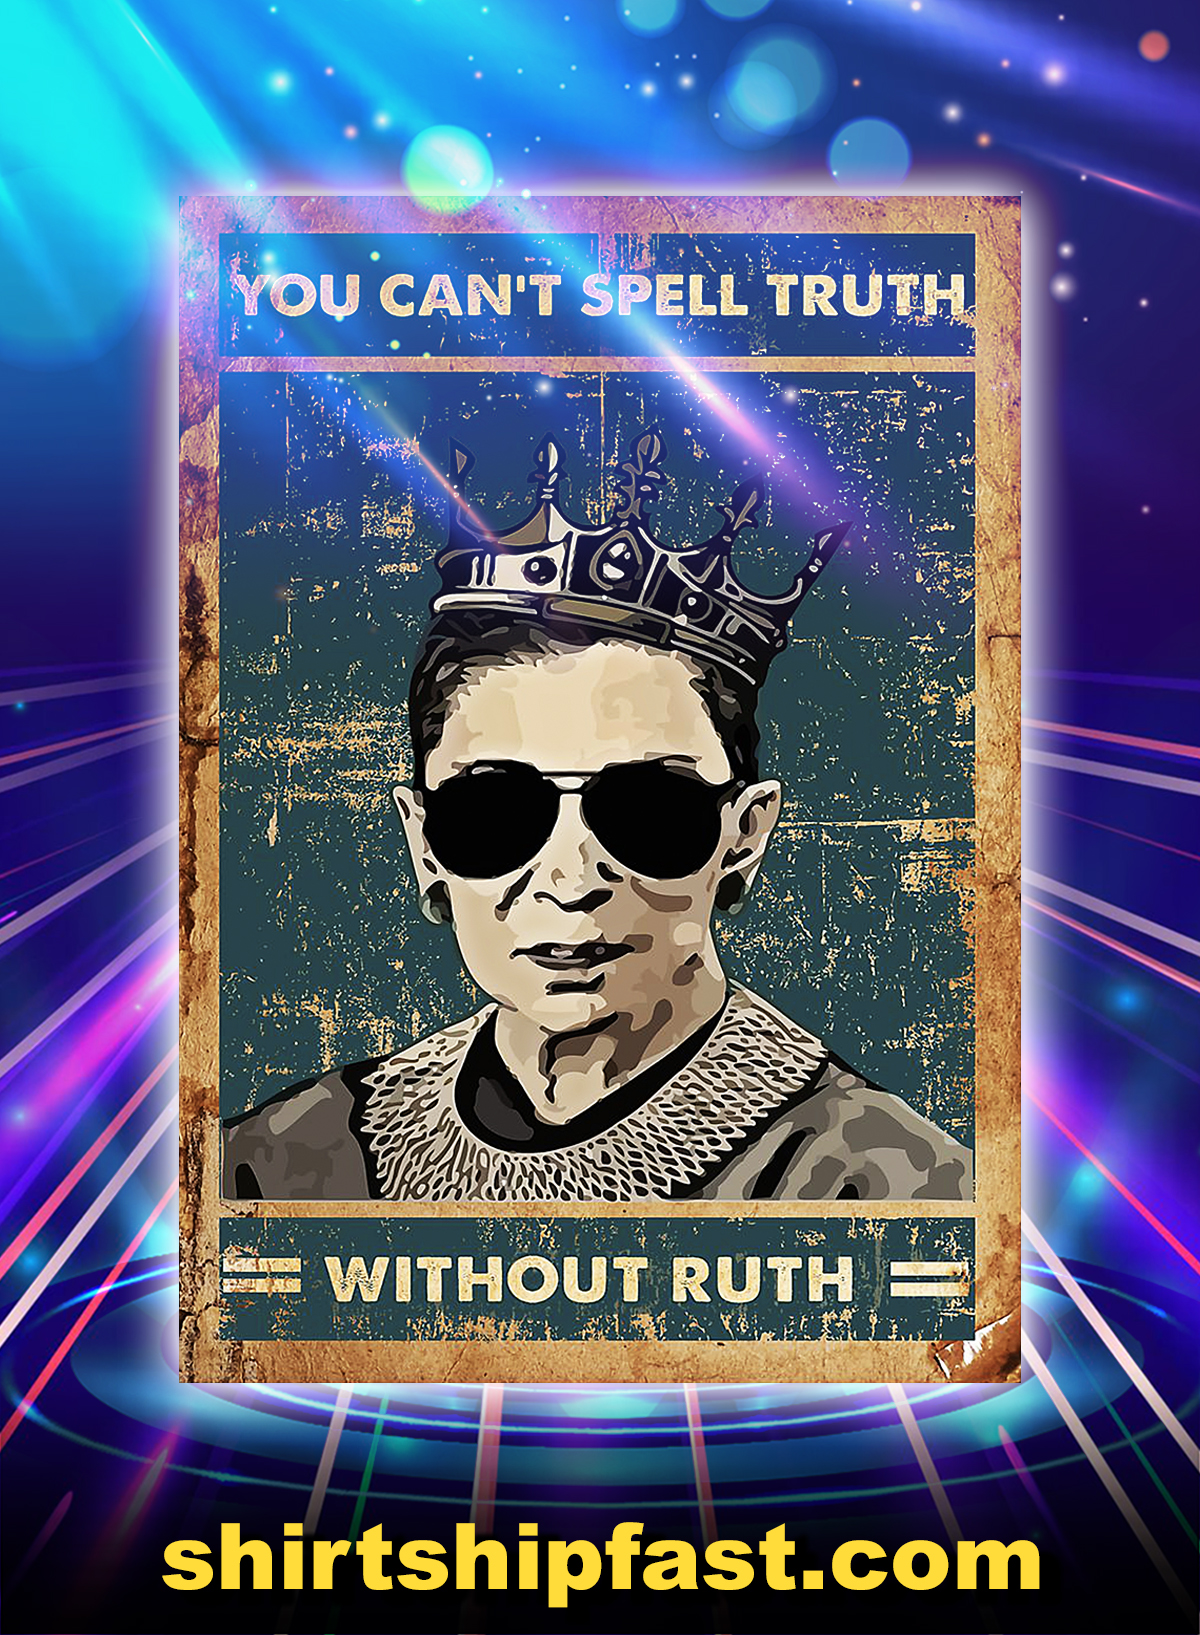 You can't spell truth without ruth poster